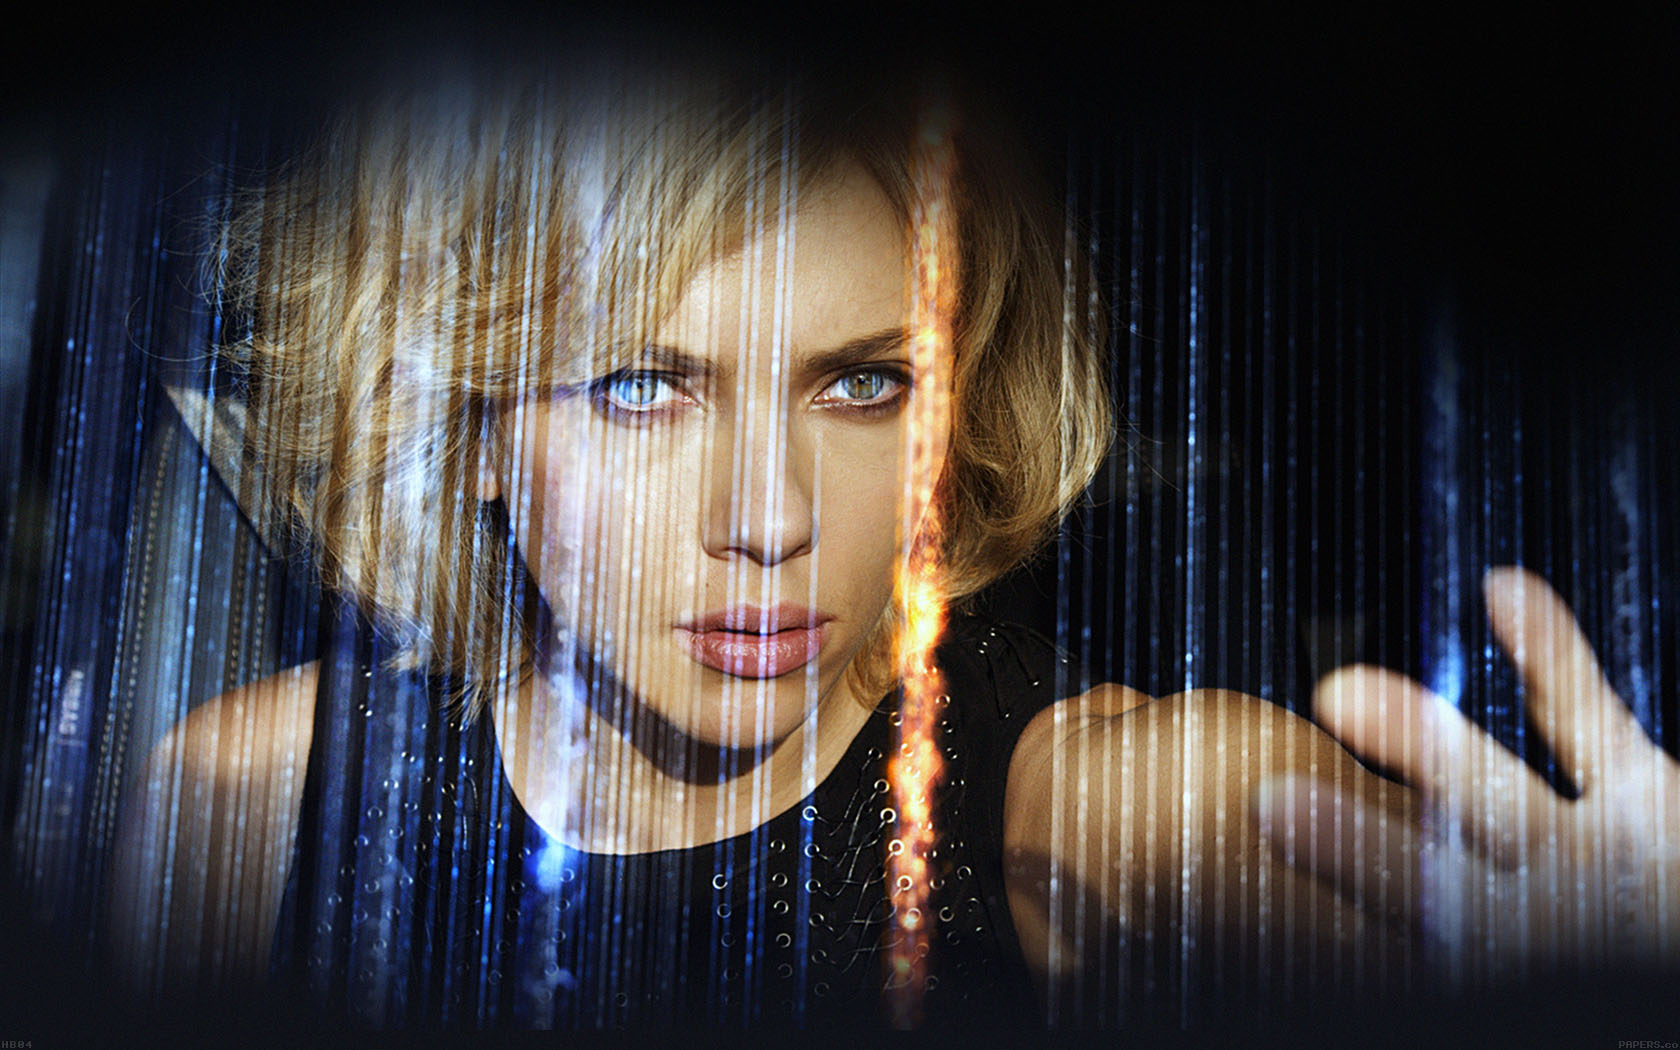 Hb04 Wallpaper Lucy Film Scarlett Johansson Sexy Face